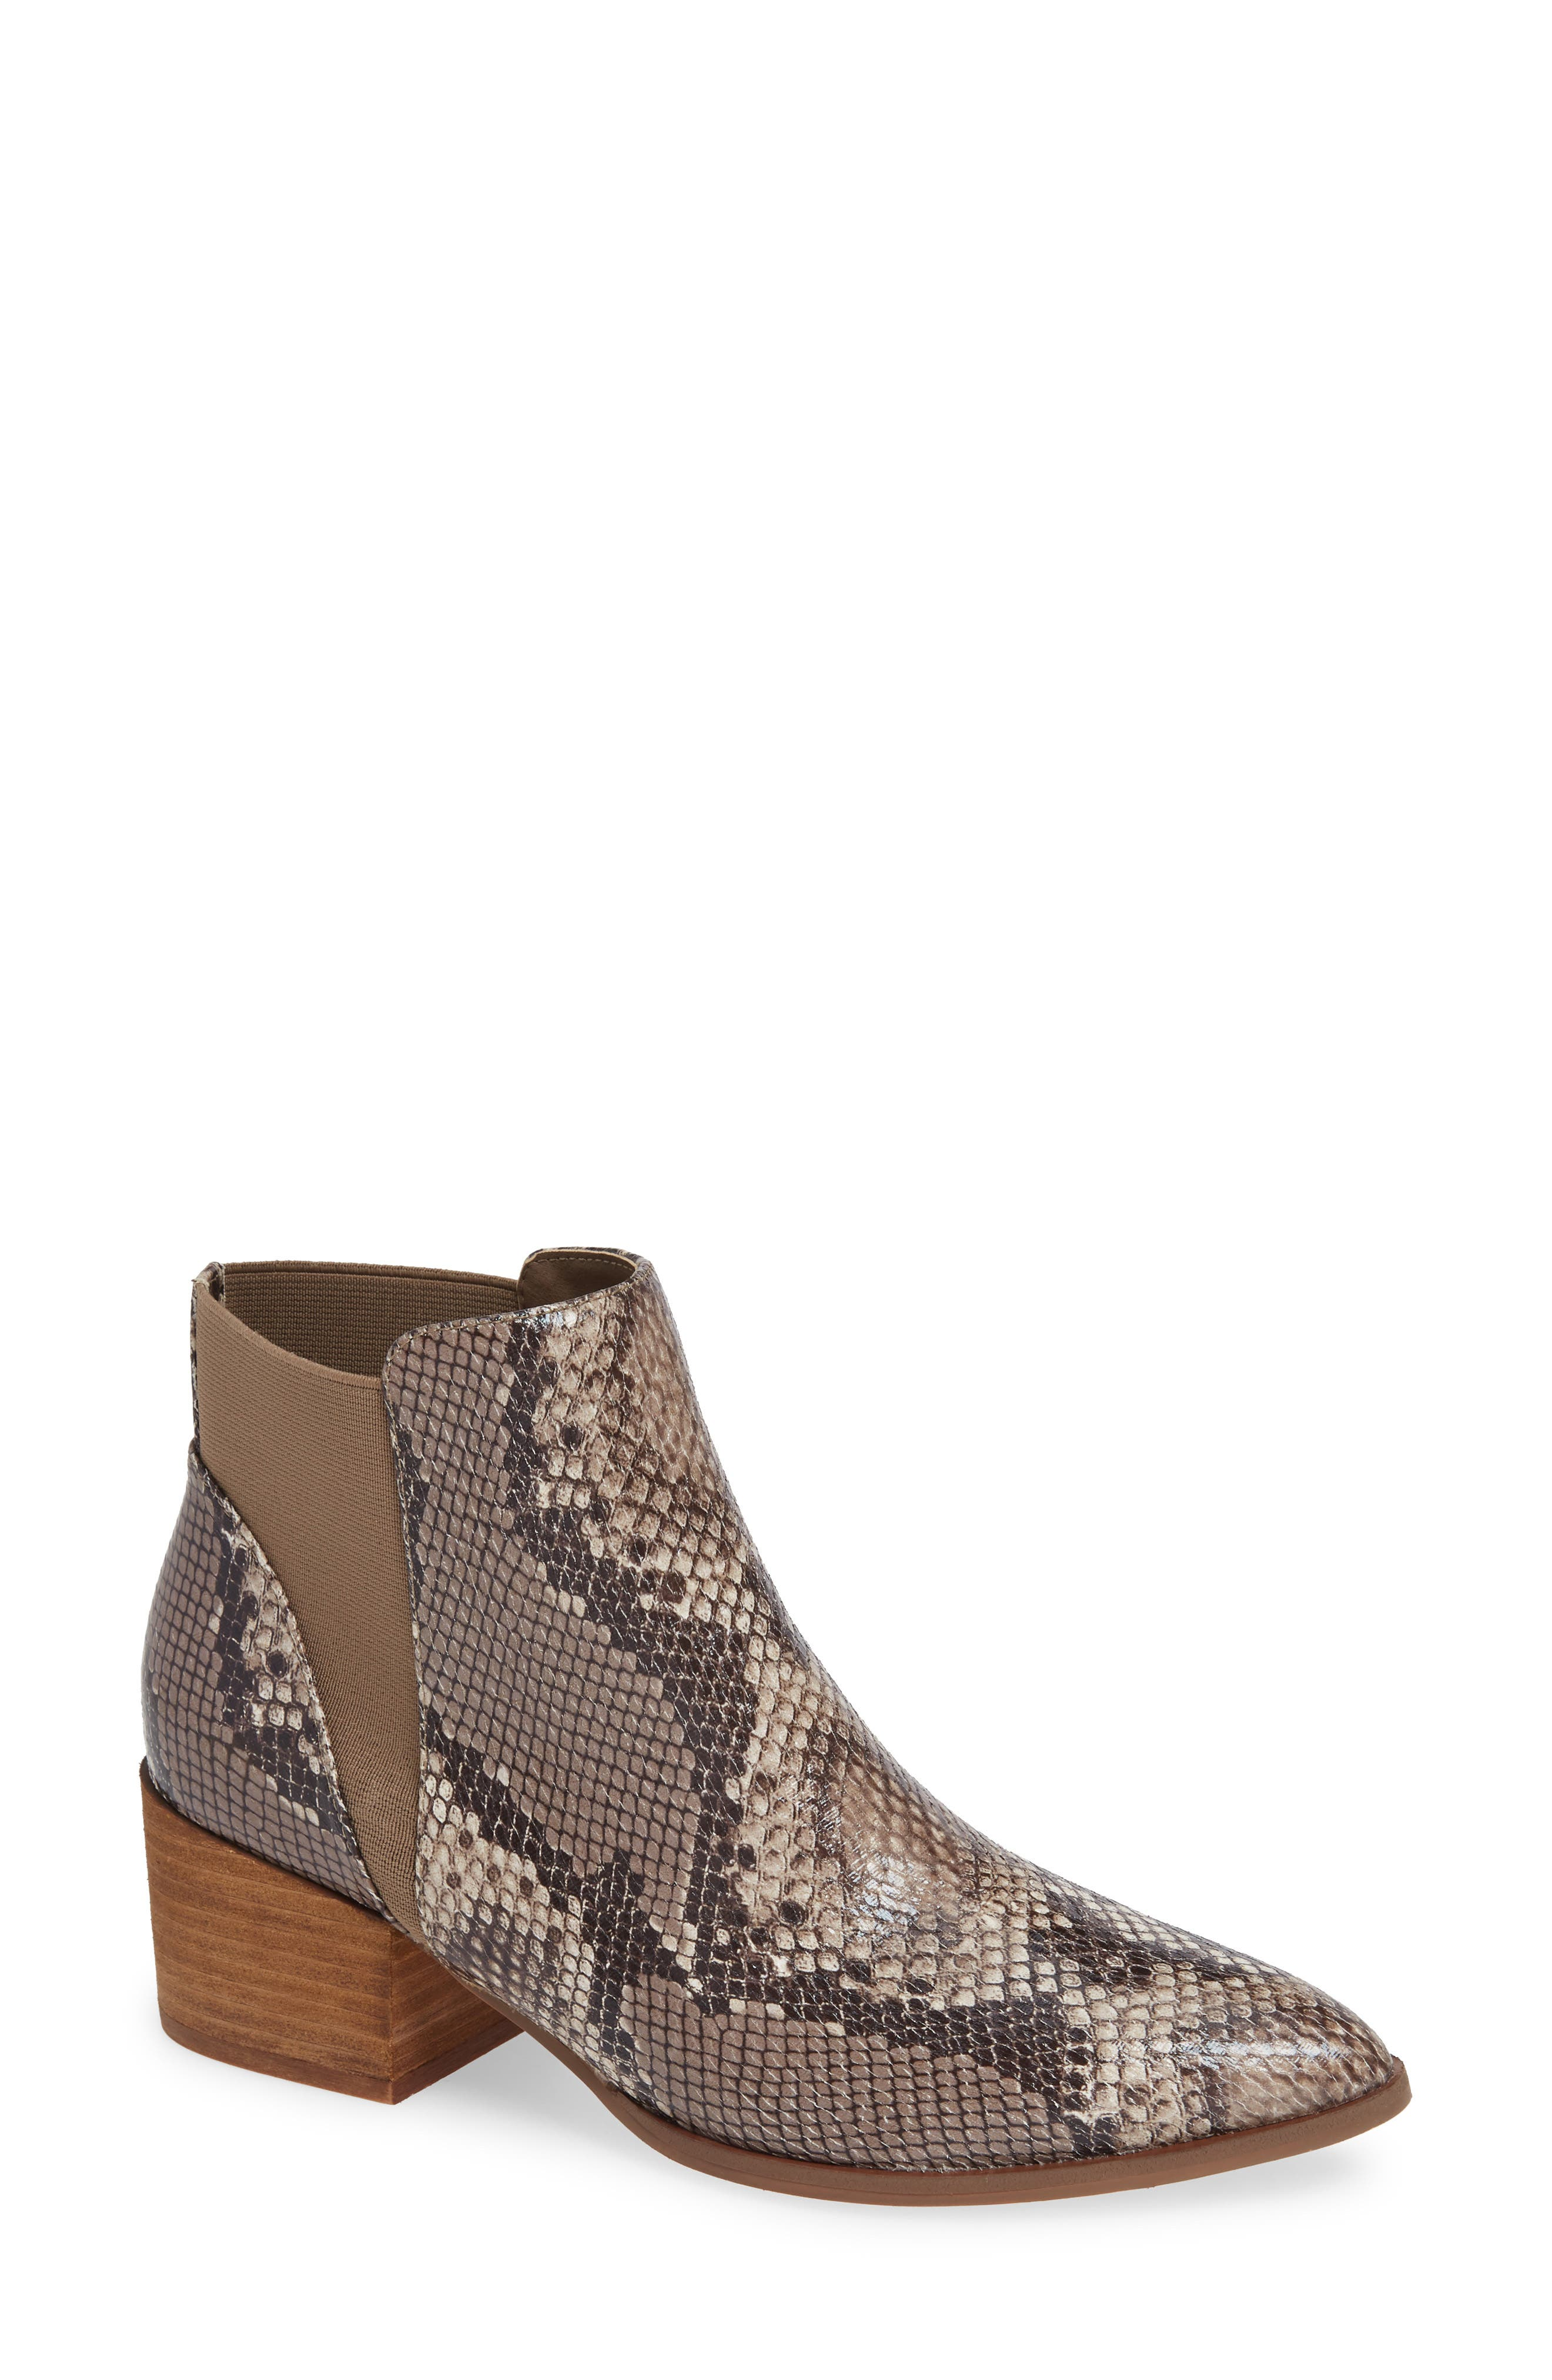 Finn Bootie,                             Main thumbnail 1, color,                             BROWN SNAKE PRINT LEATHER